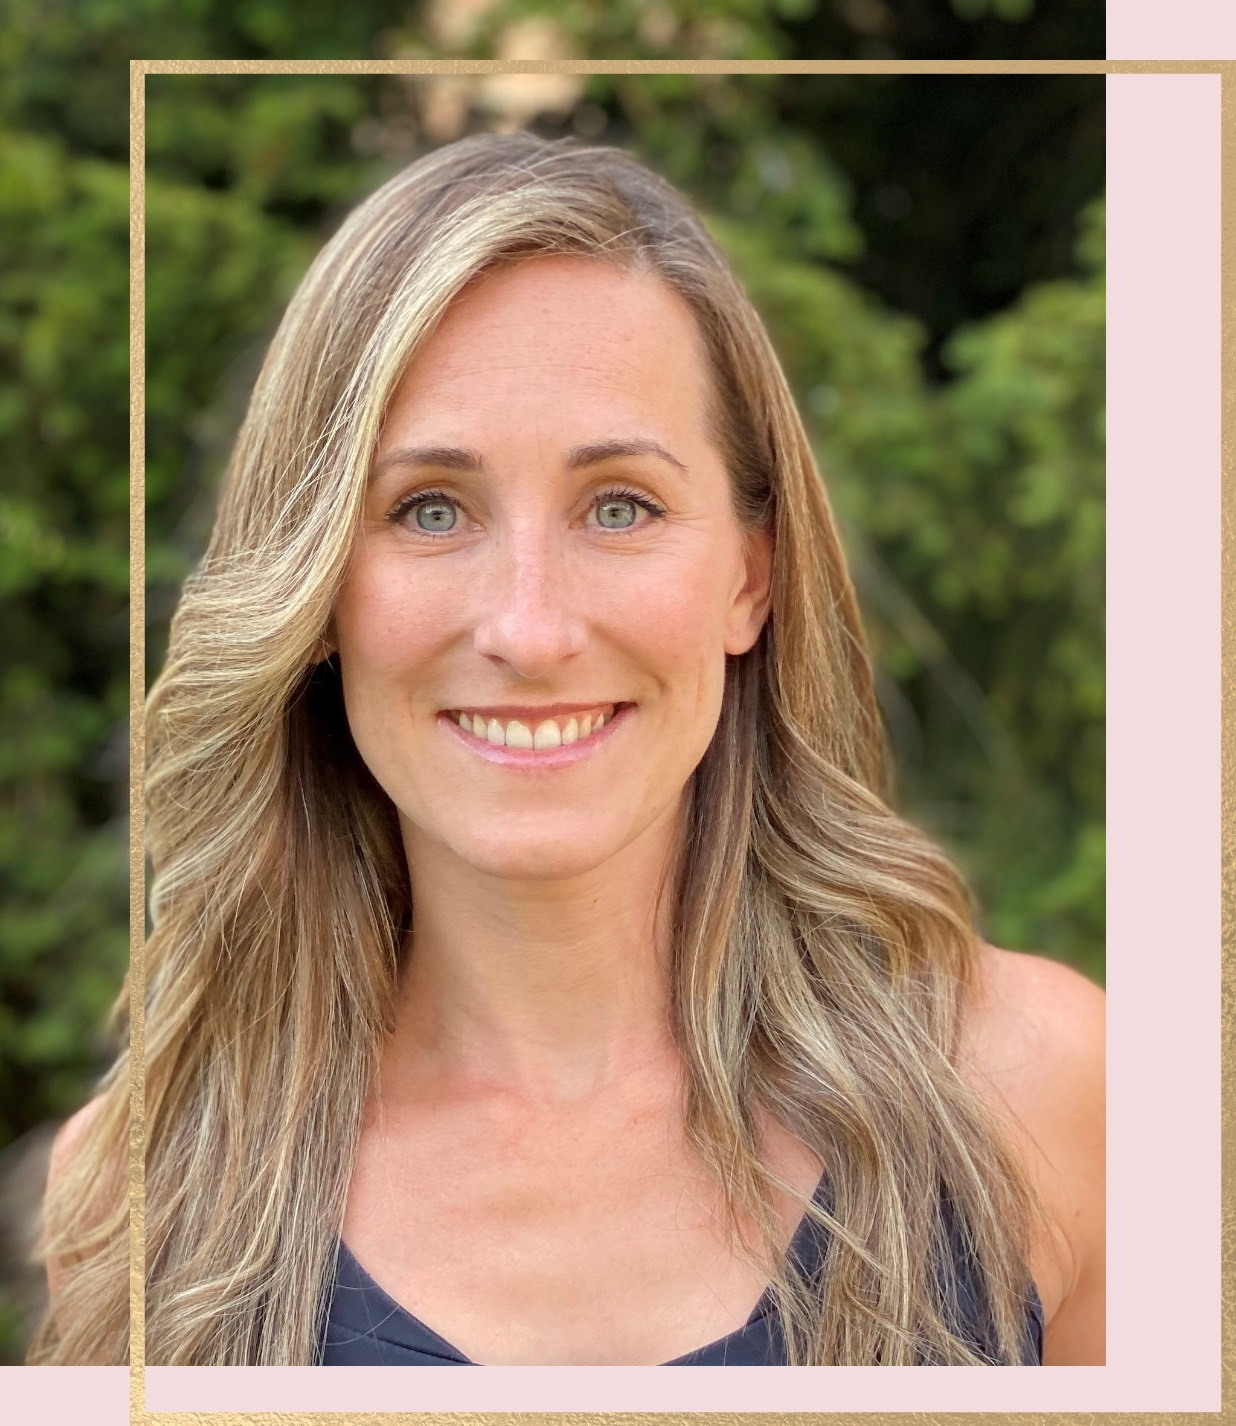 Image of Melissa Turner, founder of The Chronic Wellness Project